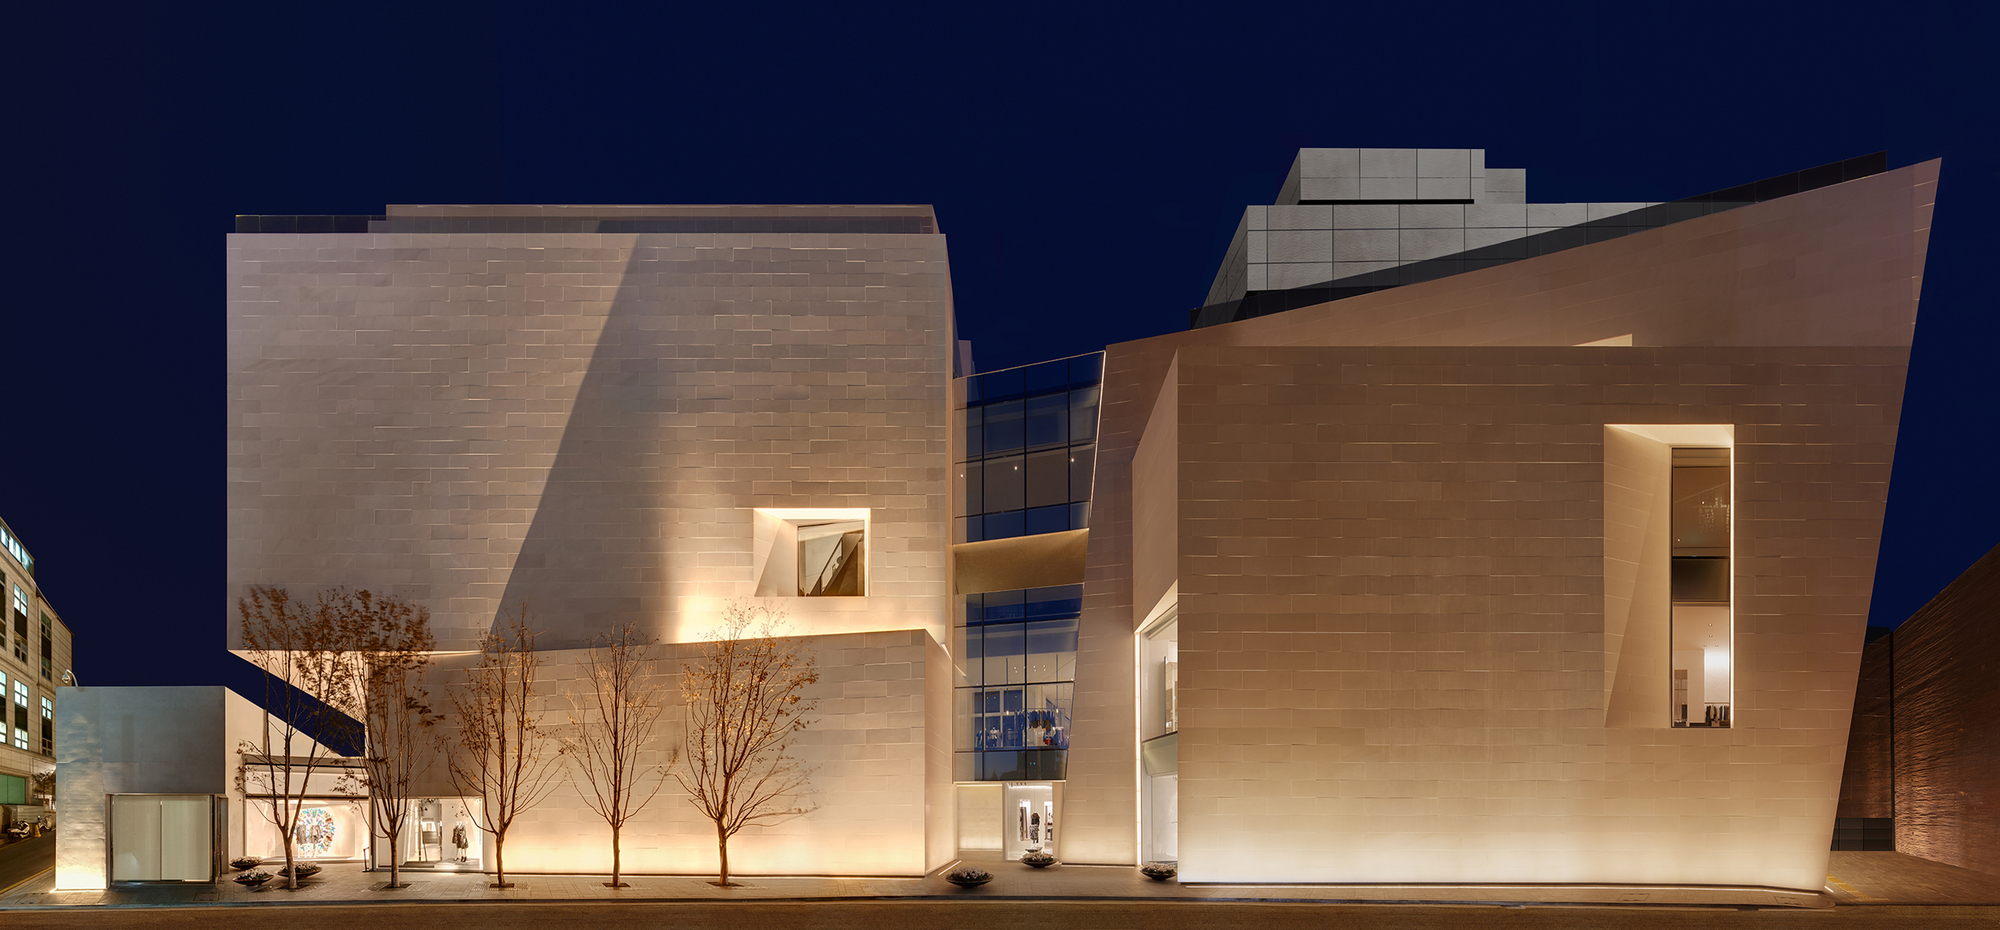 Boontheshop / Peter Marino Architect | ArchDaily